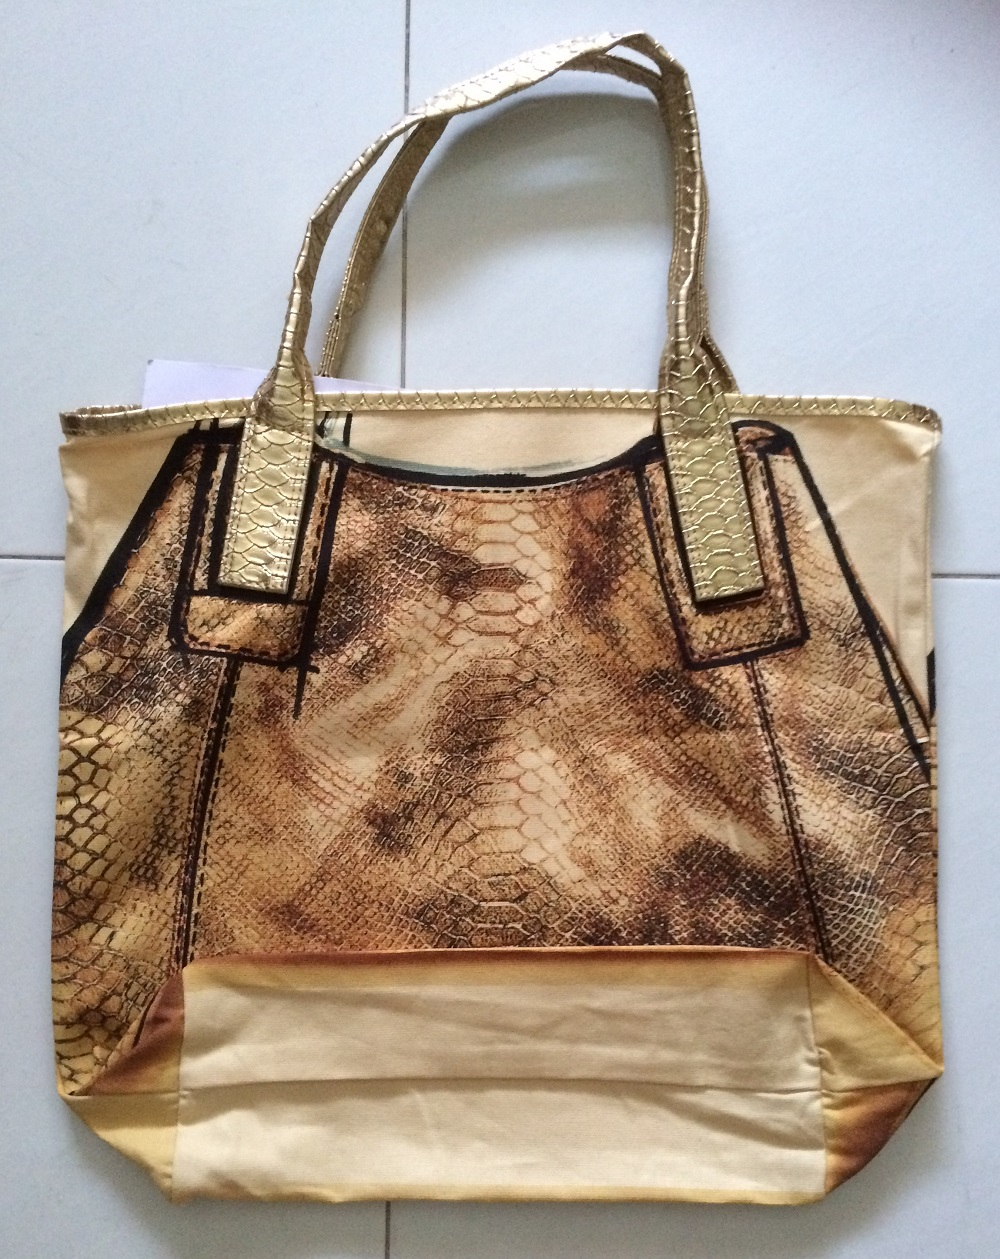 Marie Claire Sep 15, gold bag